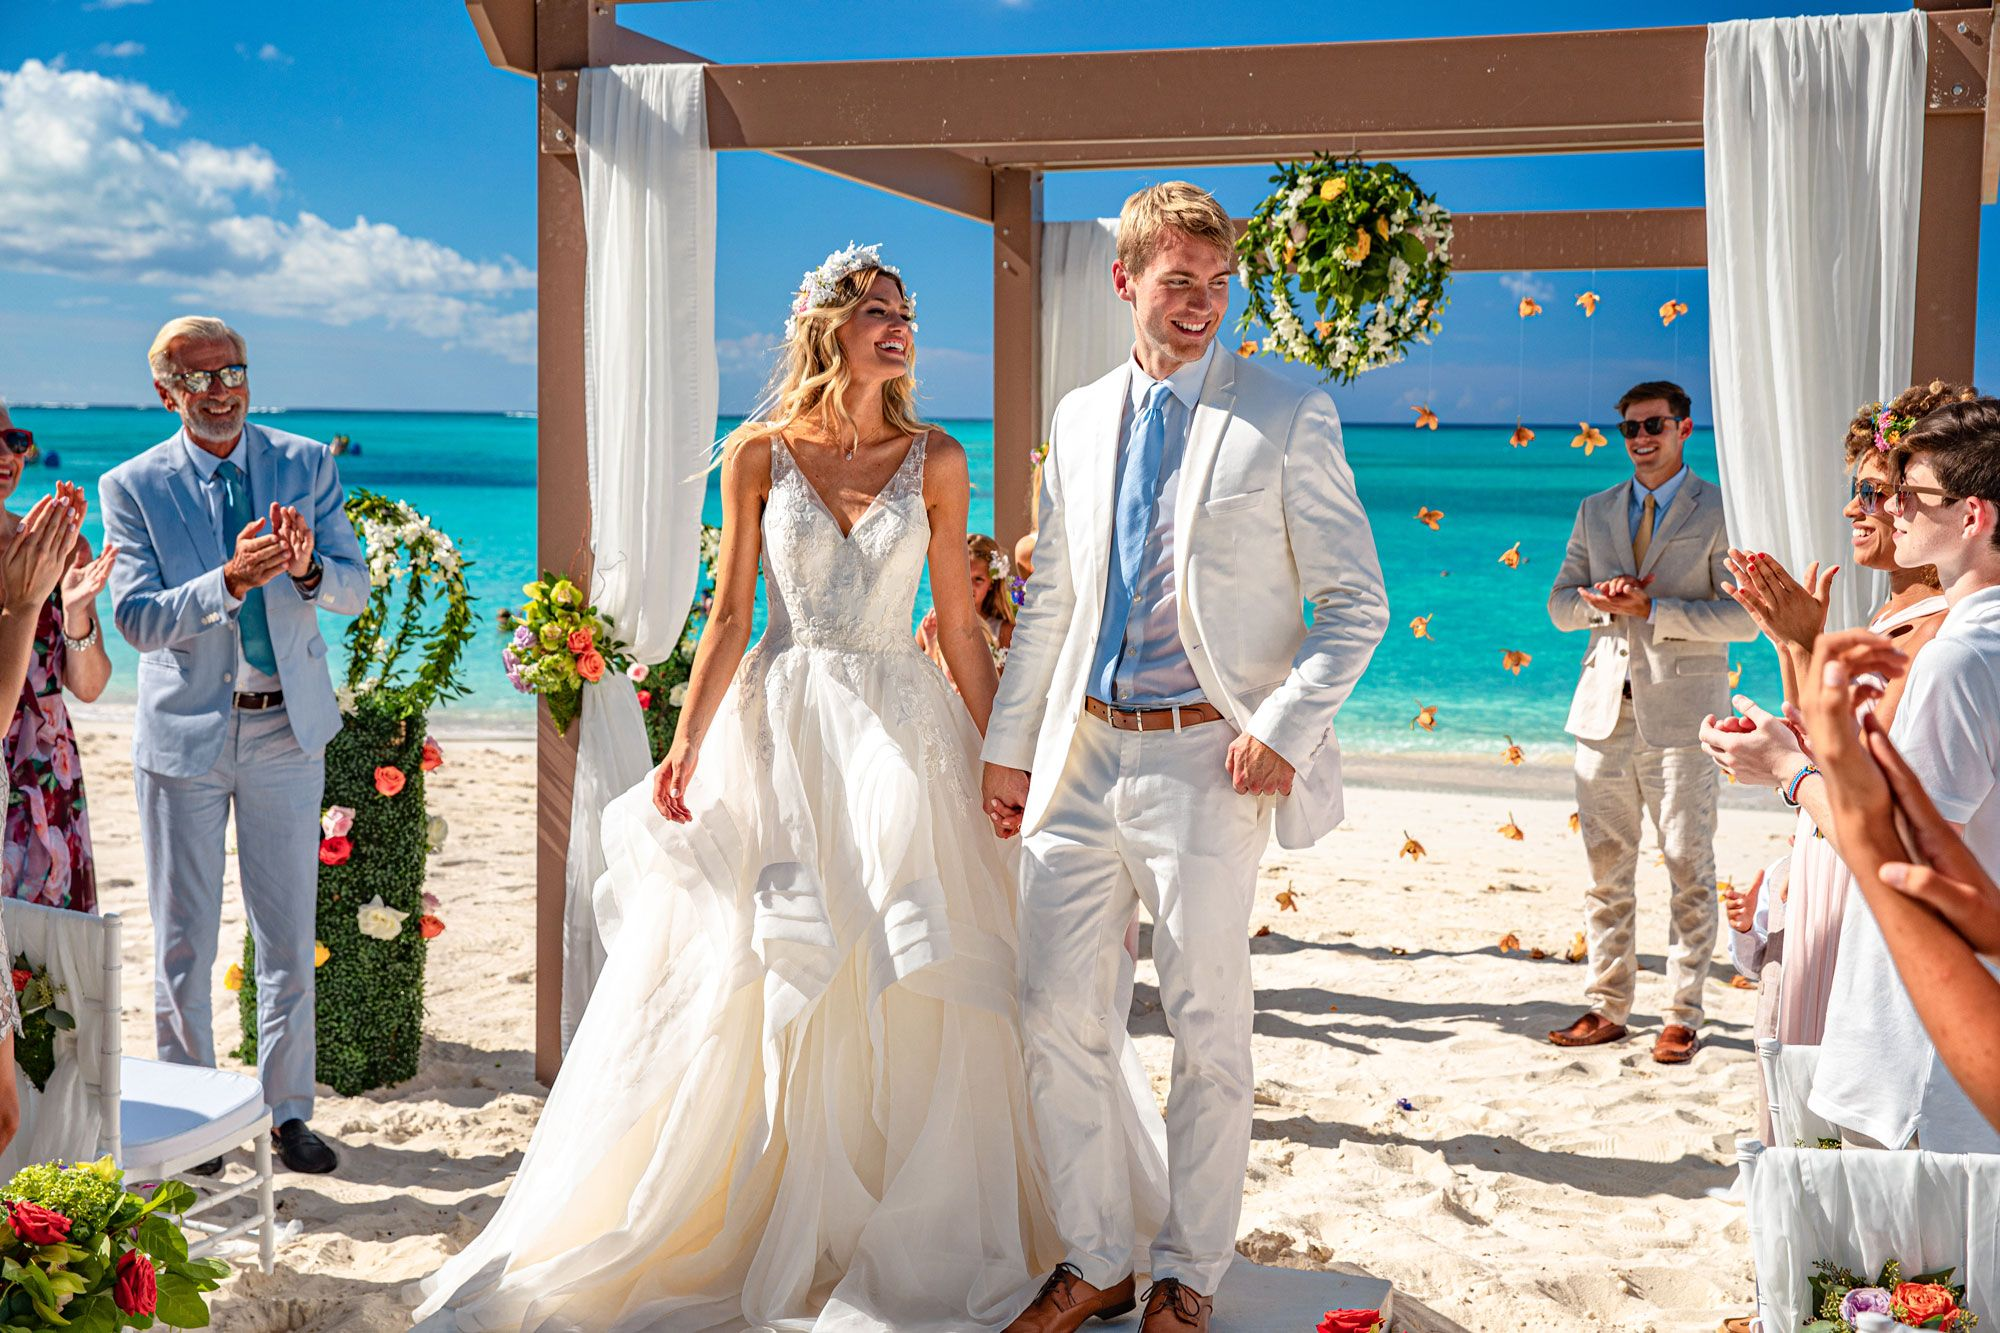 Helpful Wedding Tips For Your Personal Benefit